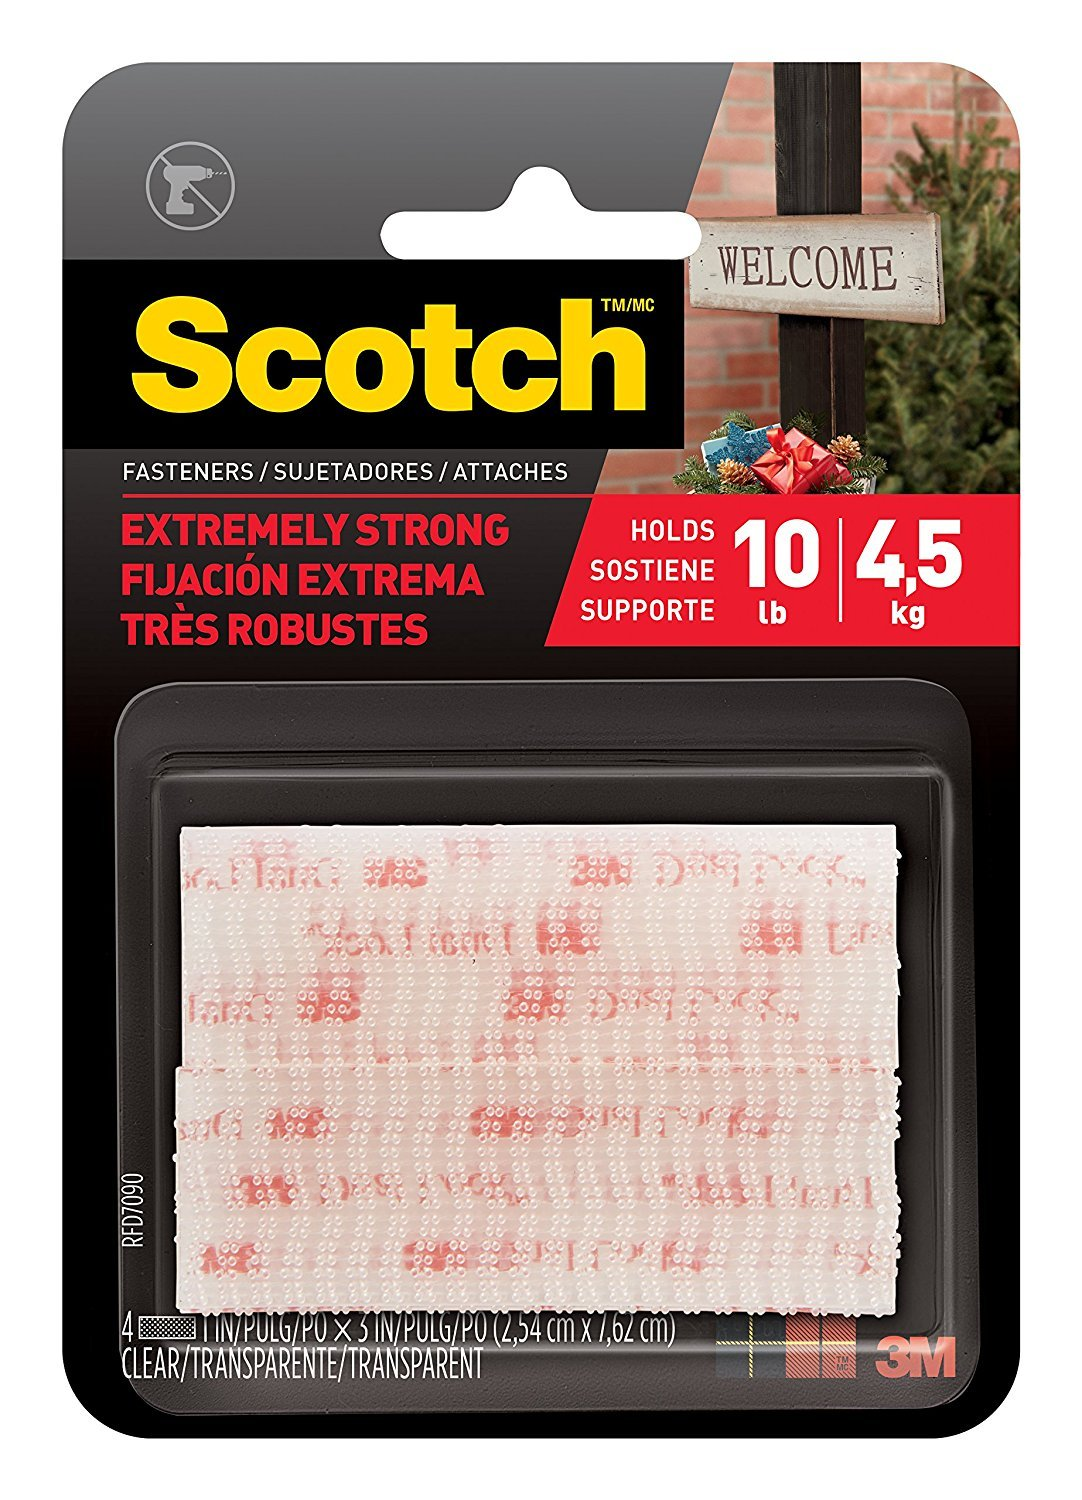 Scotch(R) All-Weather Fasteners, 2 Sets of 1 Inch x 3 Inches, Strips, Clear (RFD7090), 24 Pack by Scotch Brand